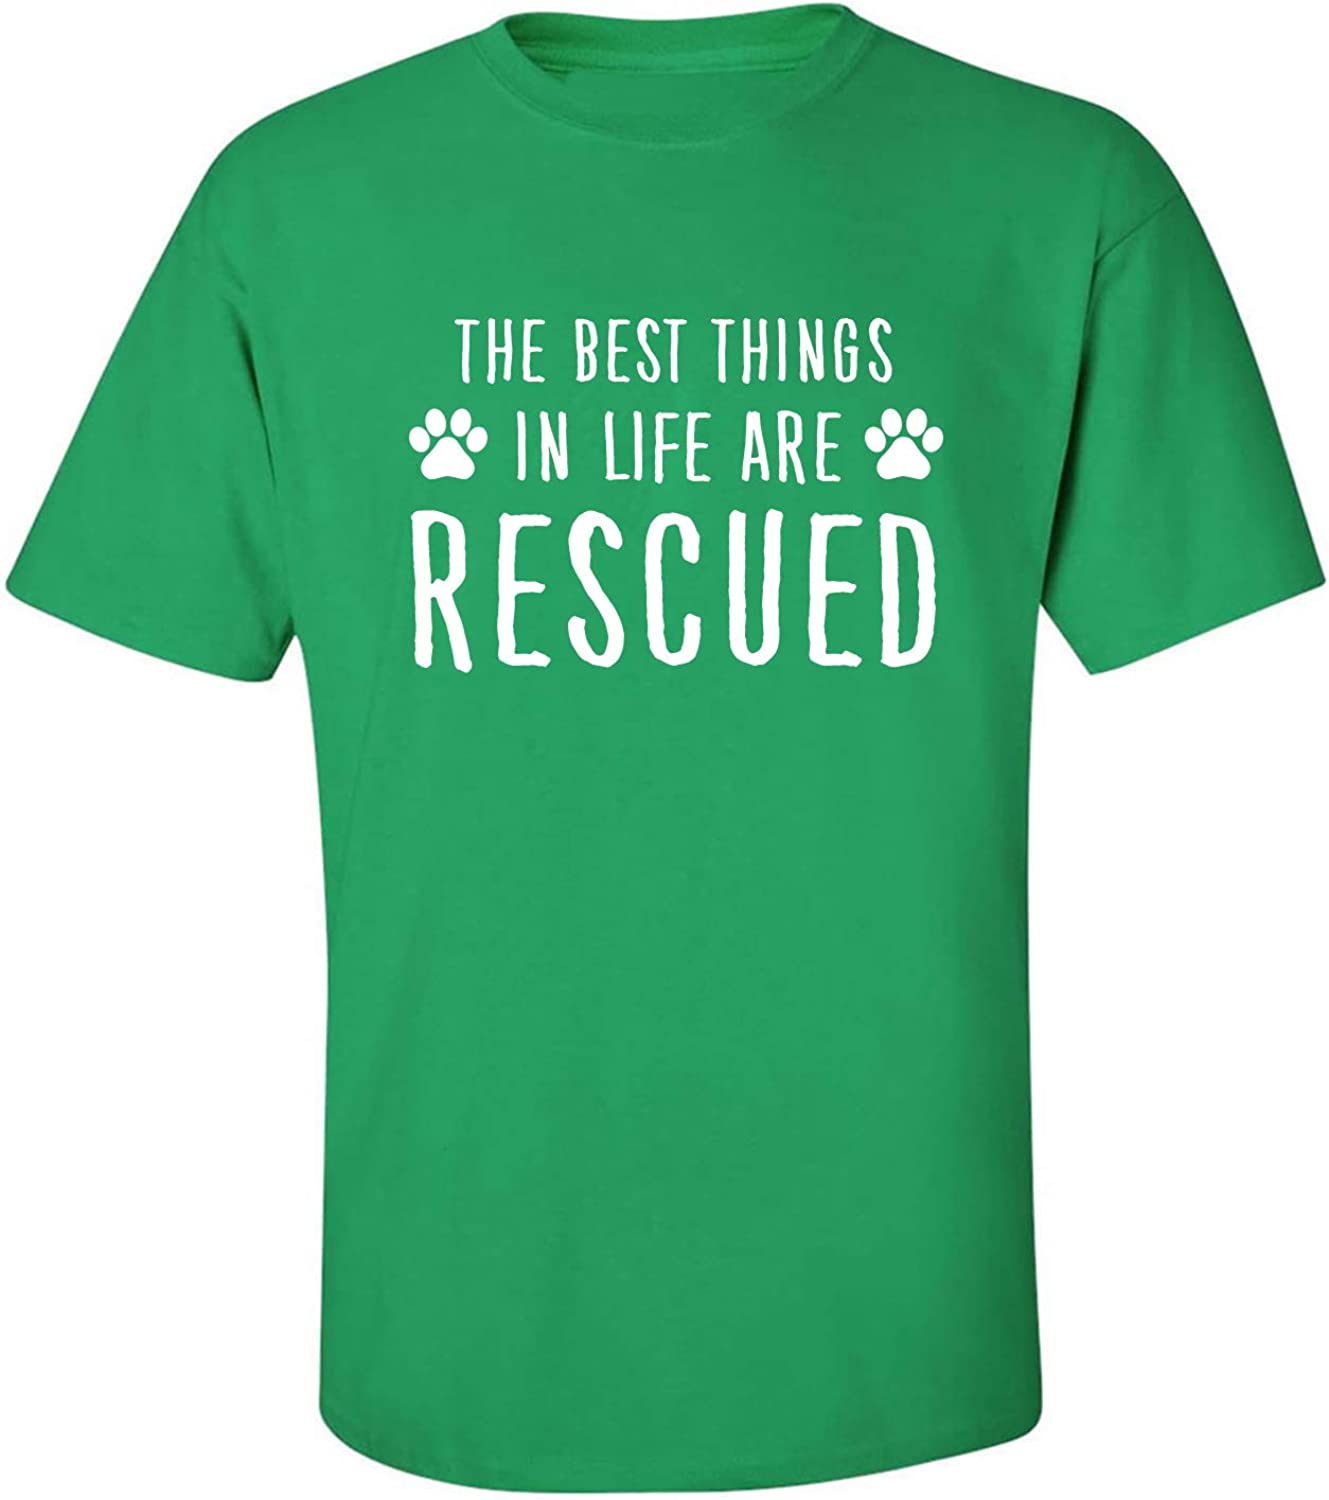 Best Things in Life are Rescued Adult T-Shirt in Kelly Green - XXXX-Large